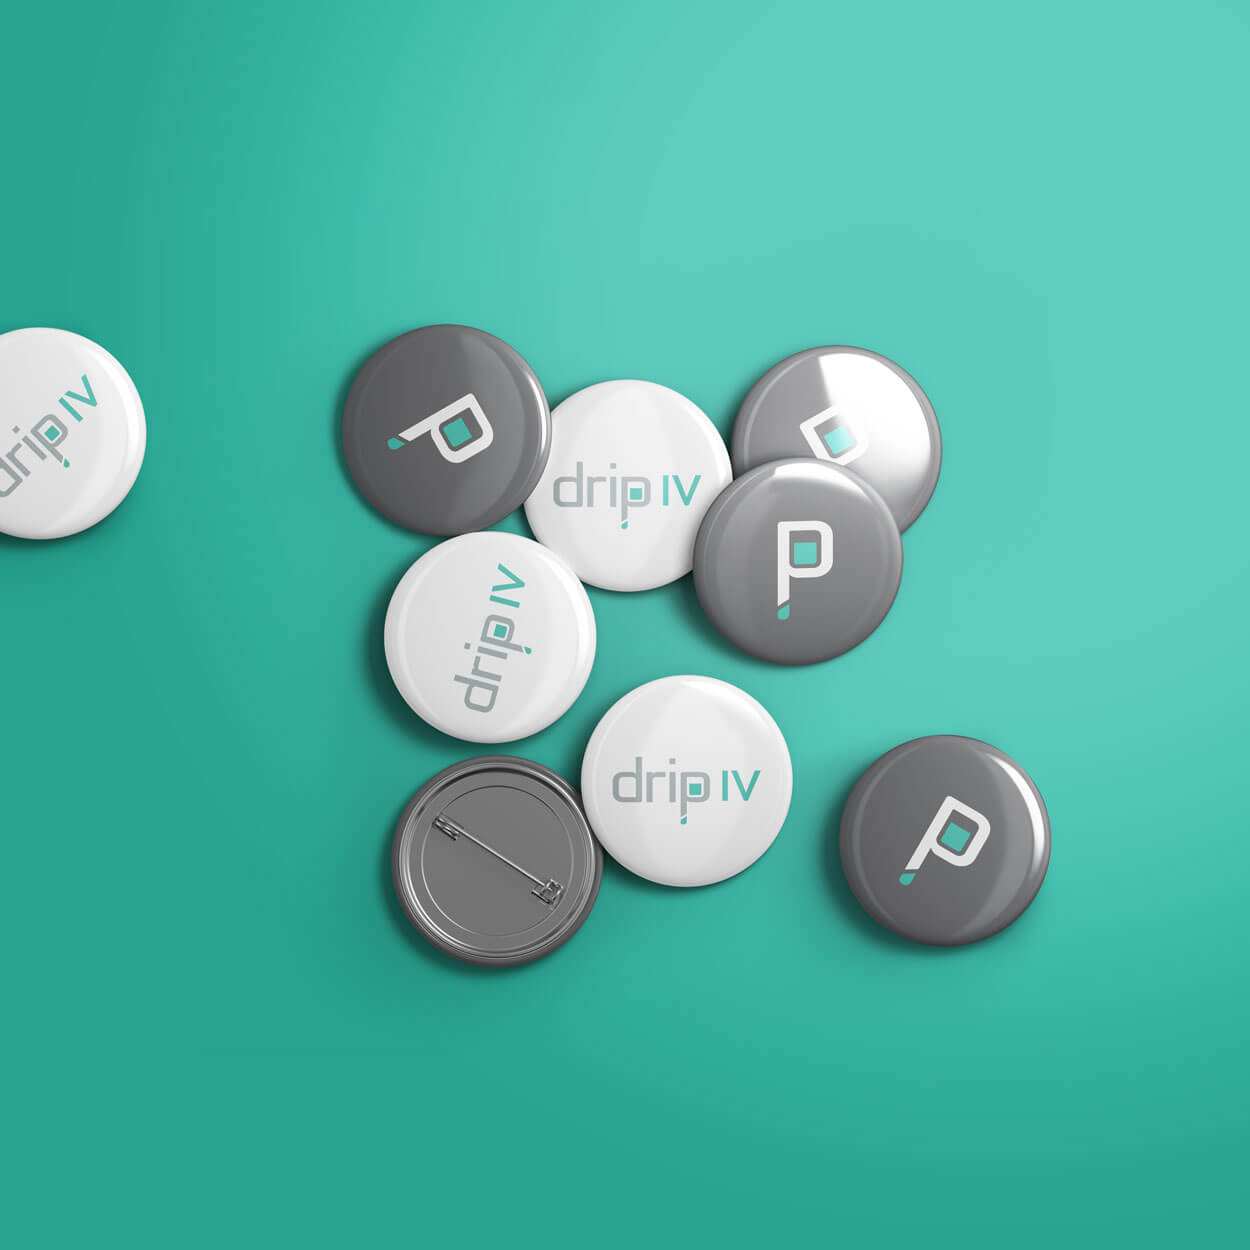 Drip IV Therapy Pins